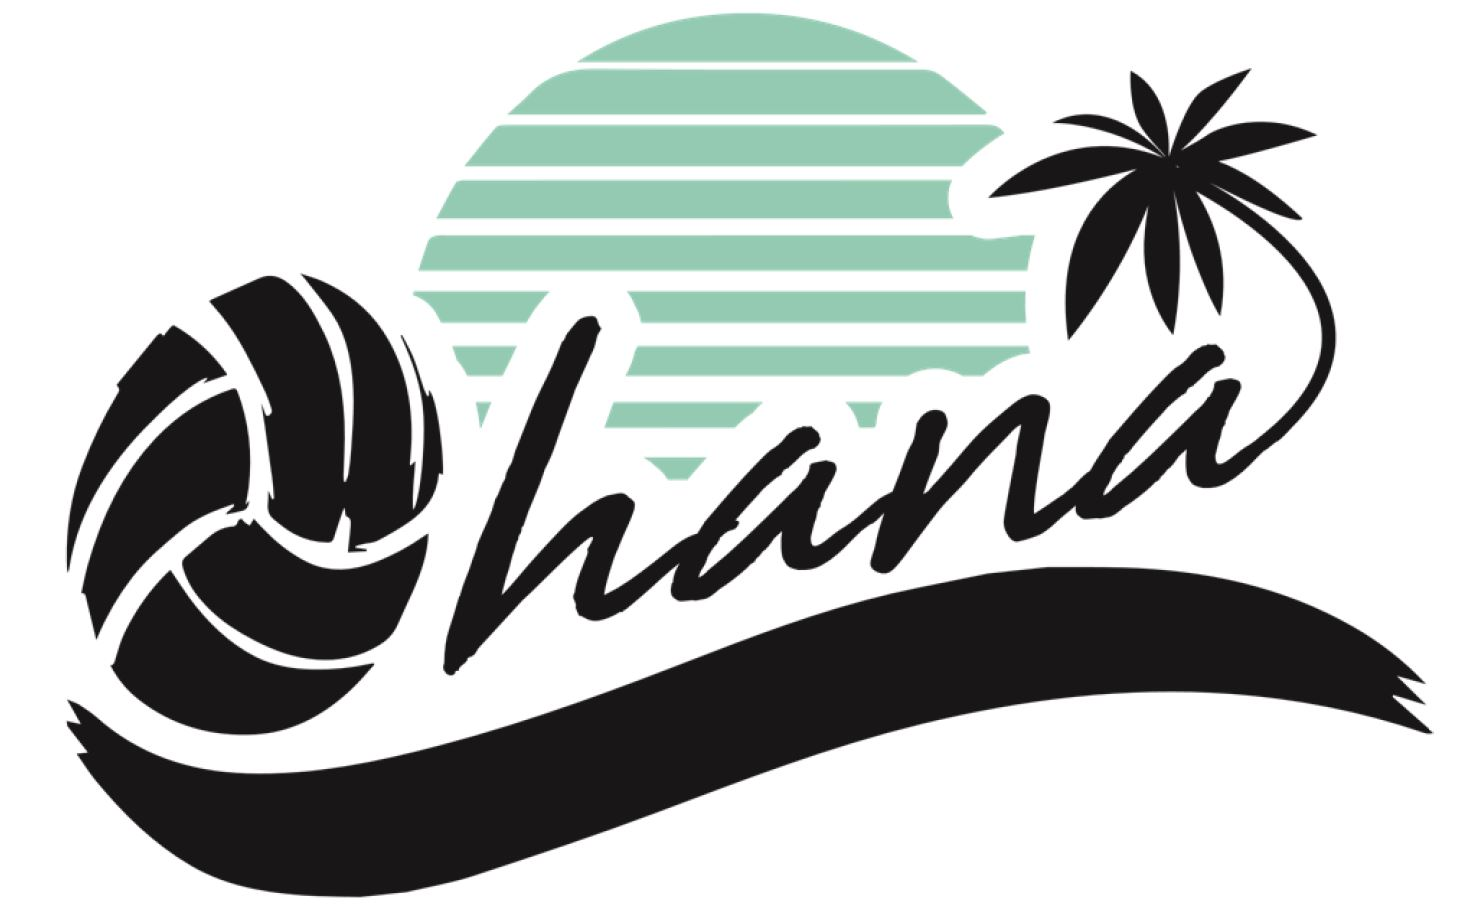 2019 Summer Soriee — Ohana Volleyball Club